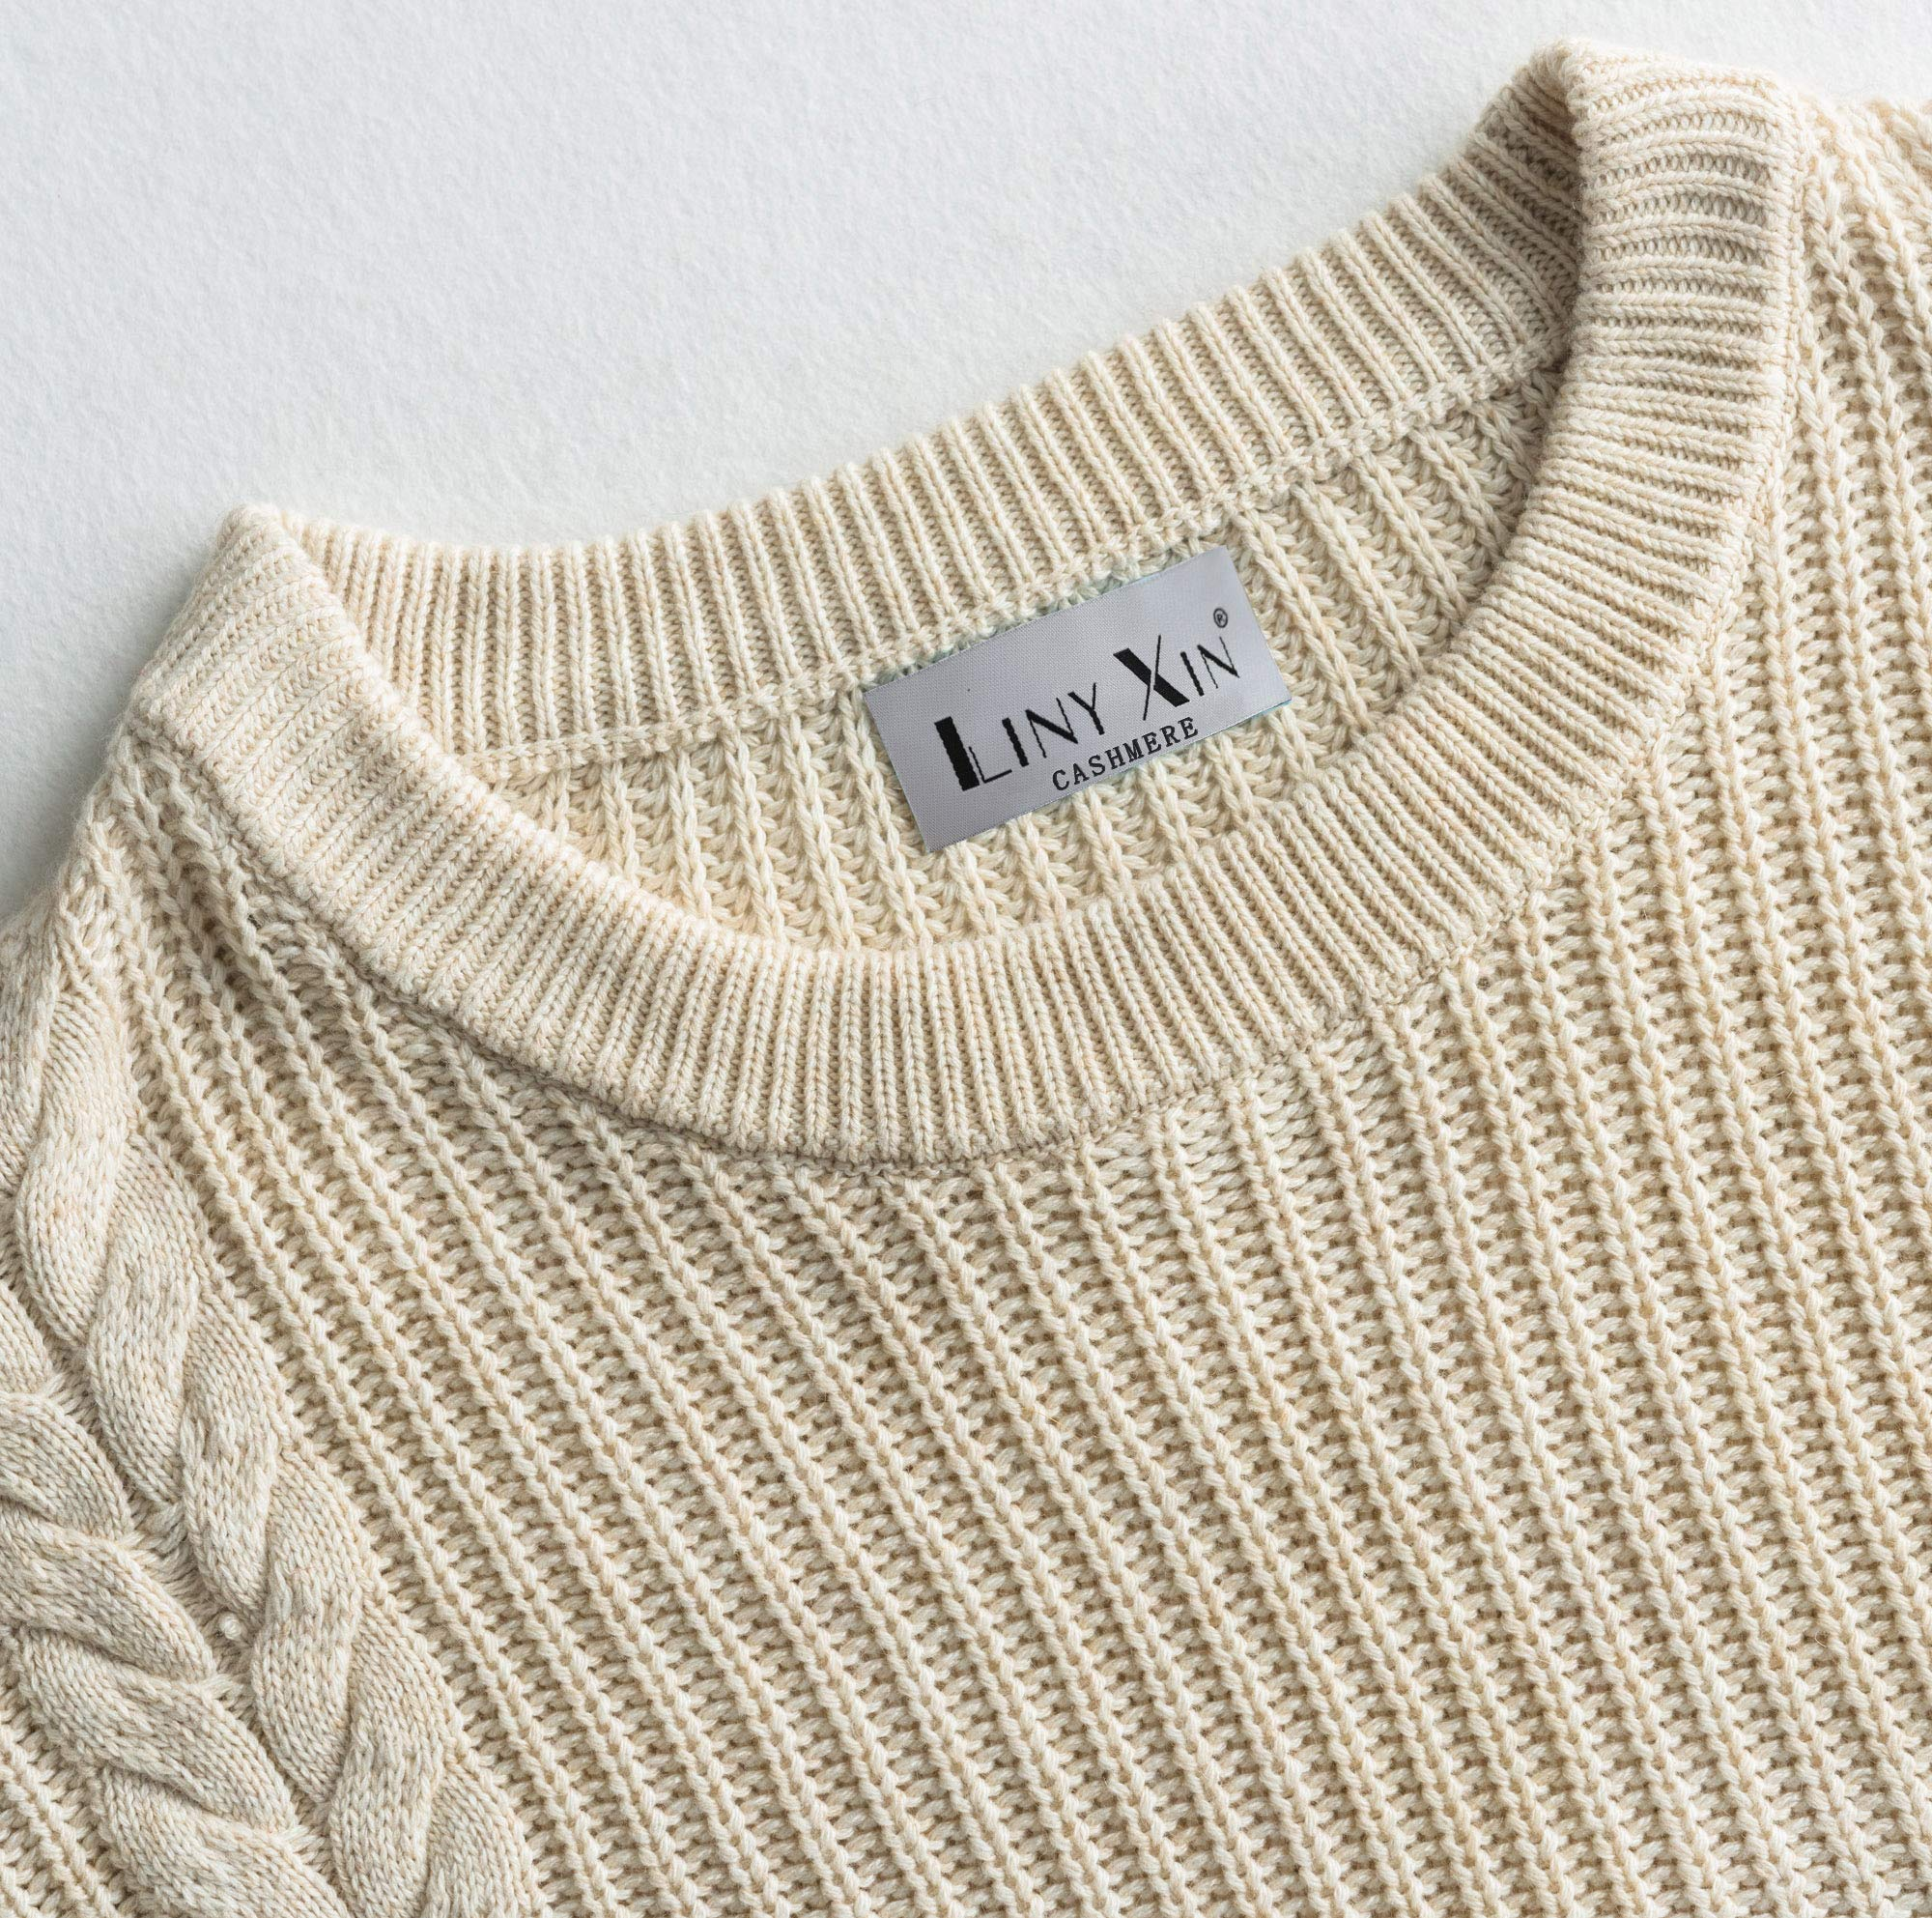 Liny Xin Mens Winter Cashmere Knitted Casual Crew Neck Long Sleeve Loose Wool Pullover Sweater Tops